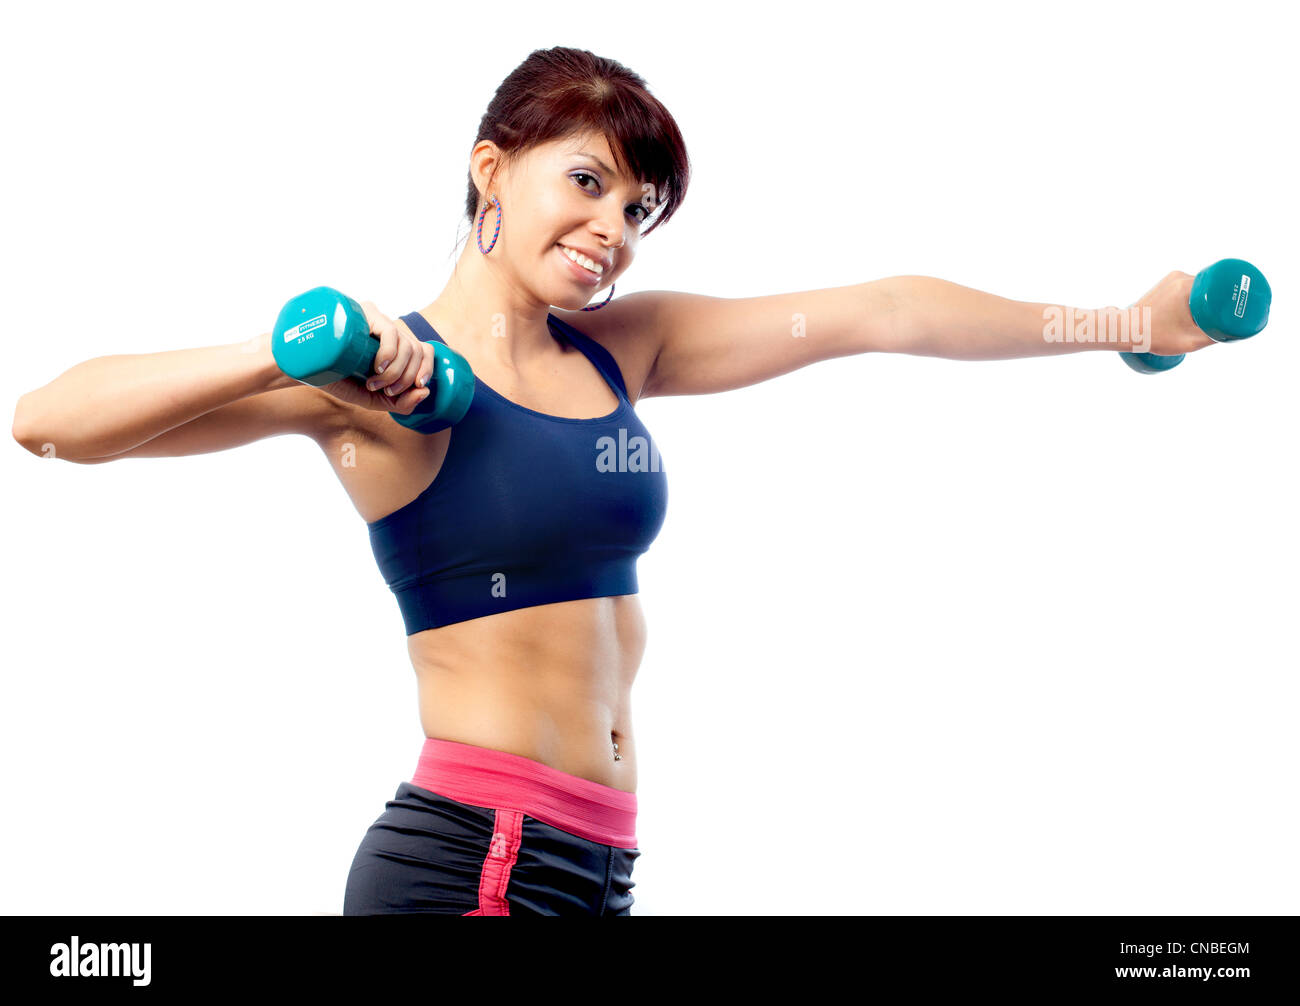 Female fitness trainer with dumbbells - Stock Image